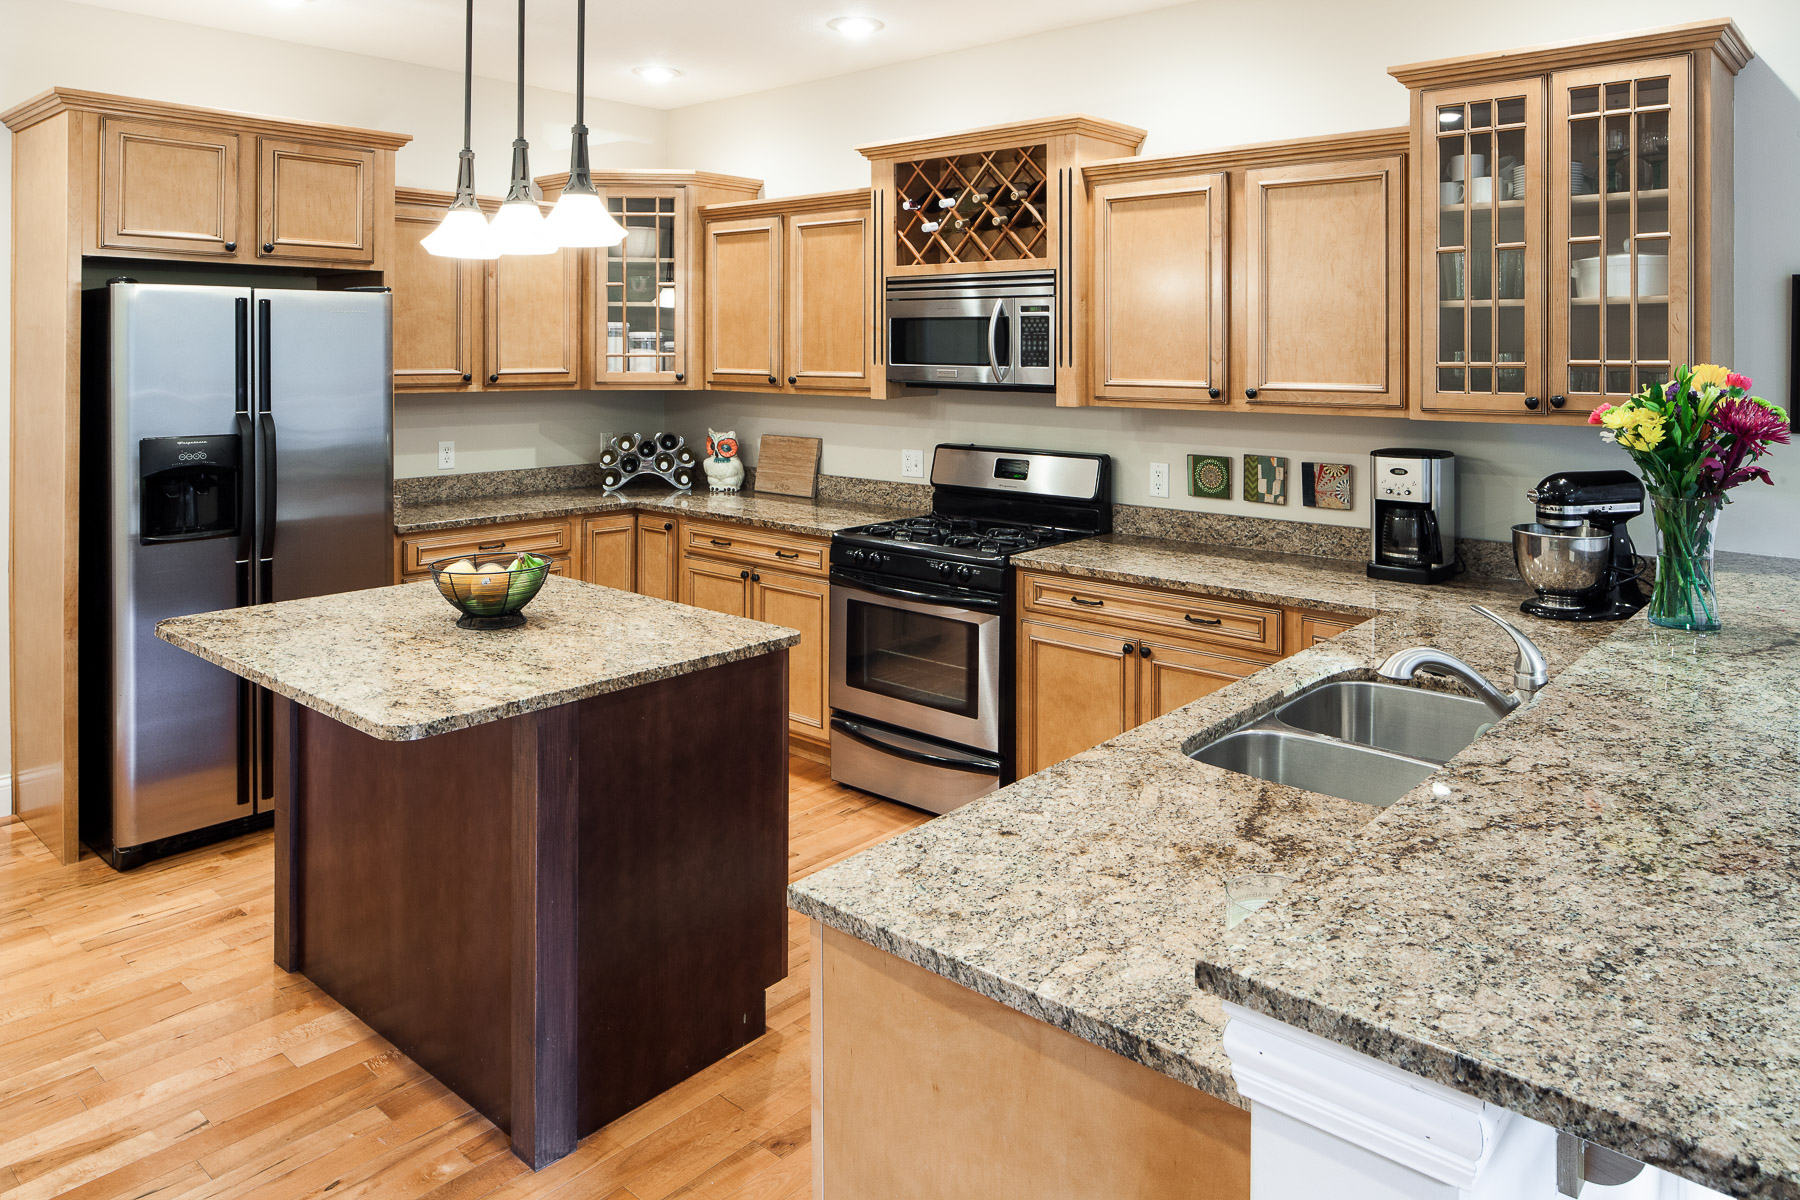 Kitchen Design Quad Cities residential architecture interior - barkley commercial photography